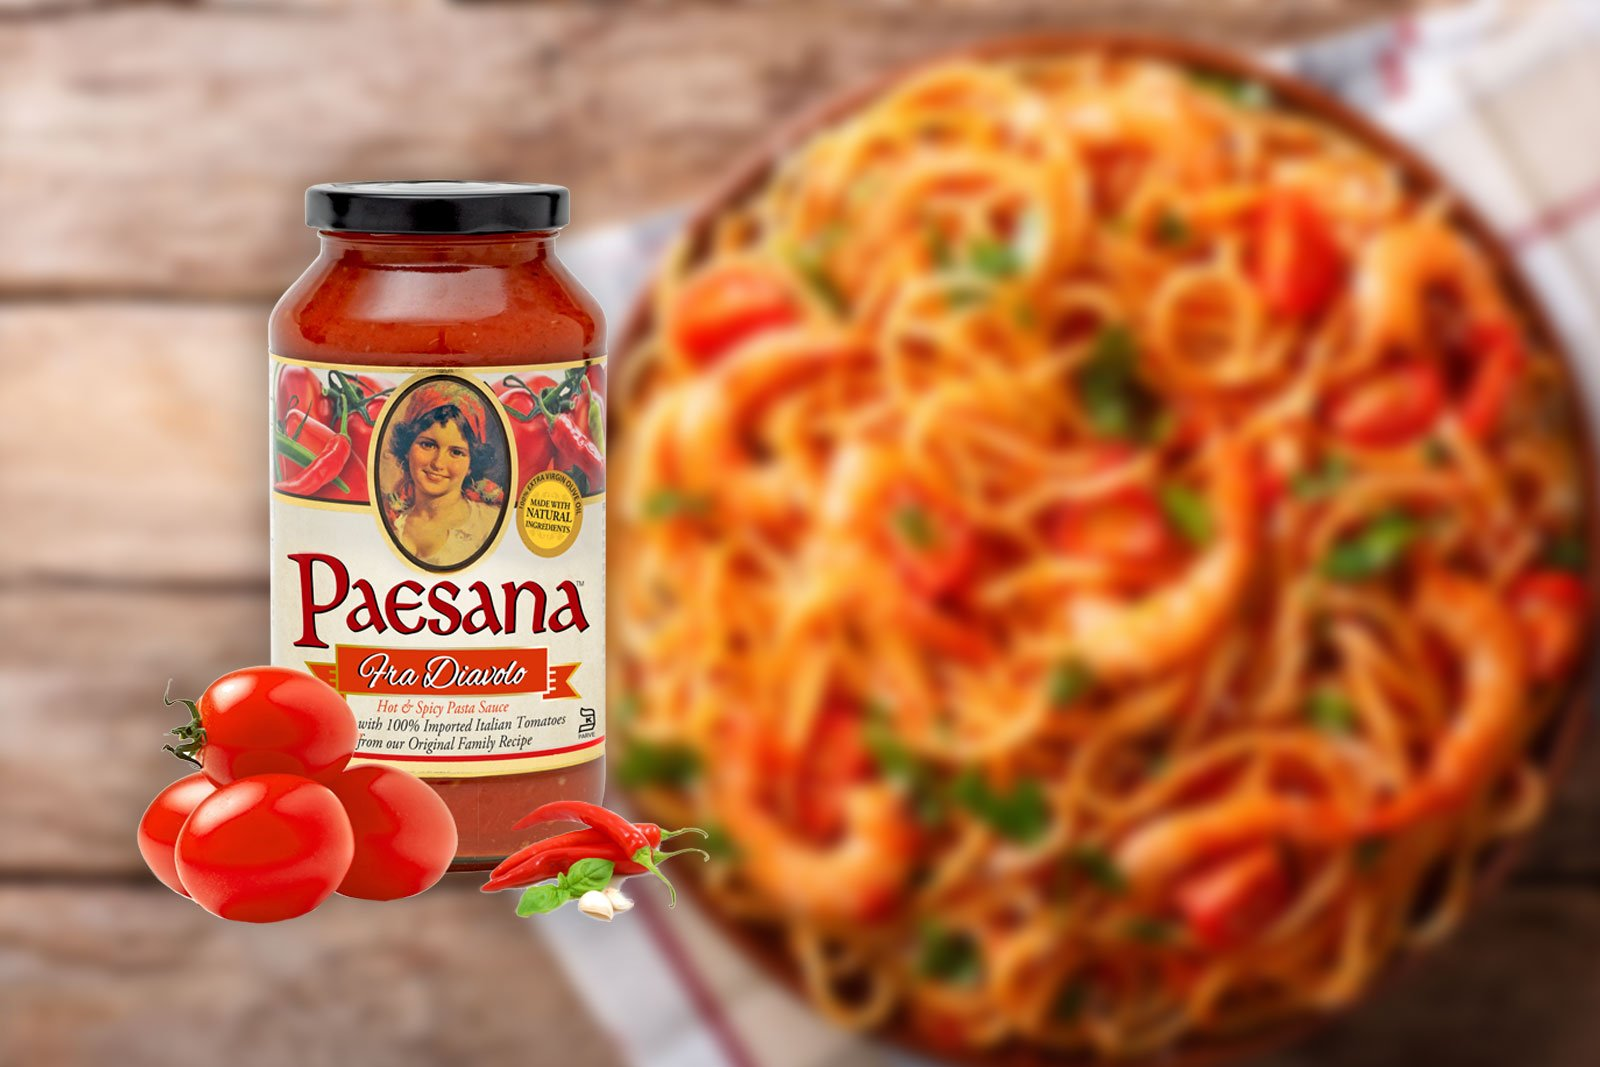 Fra Diavolo: The Bedeviling Origins Of This Fiery Sauce